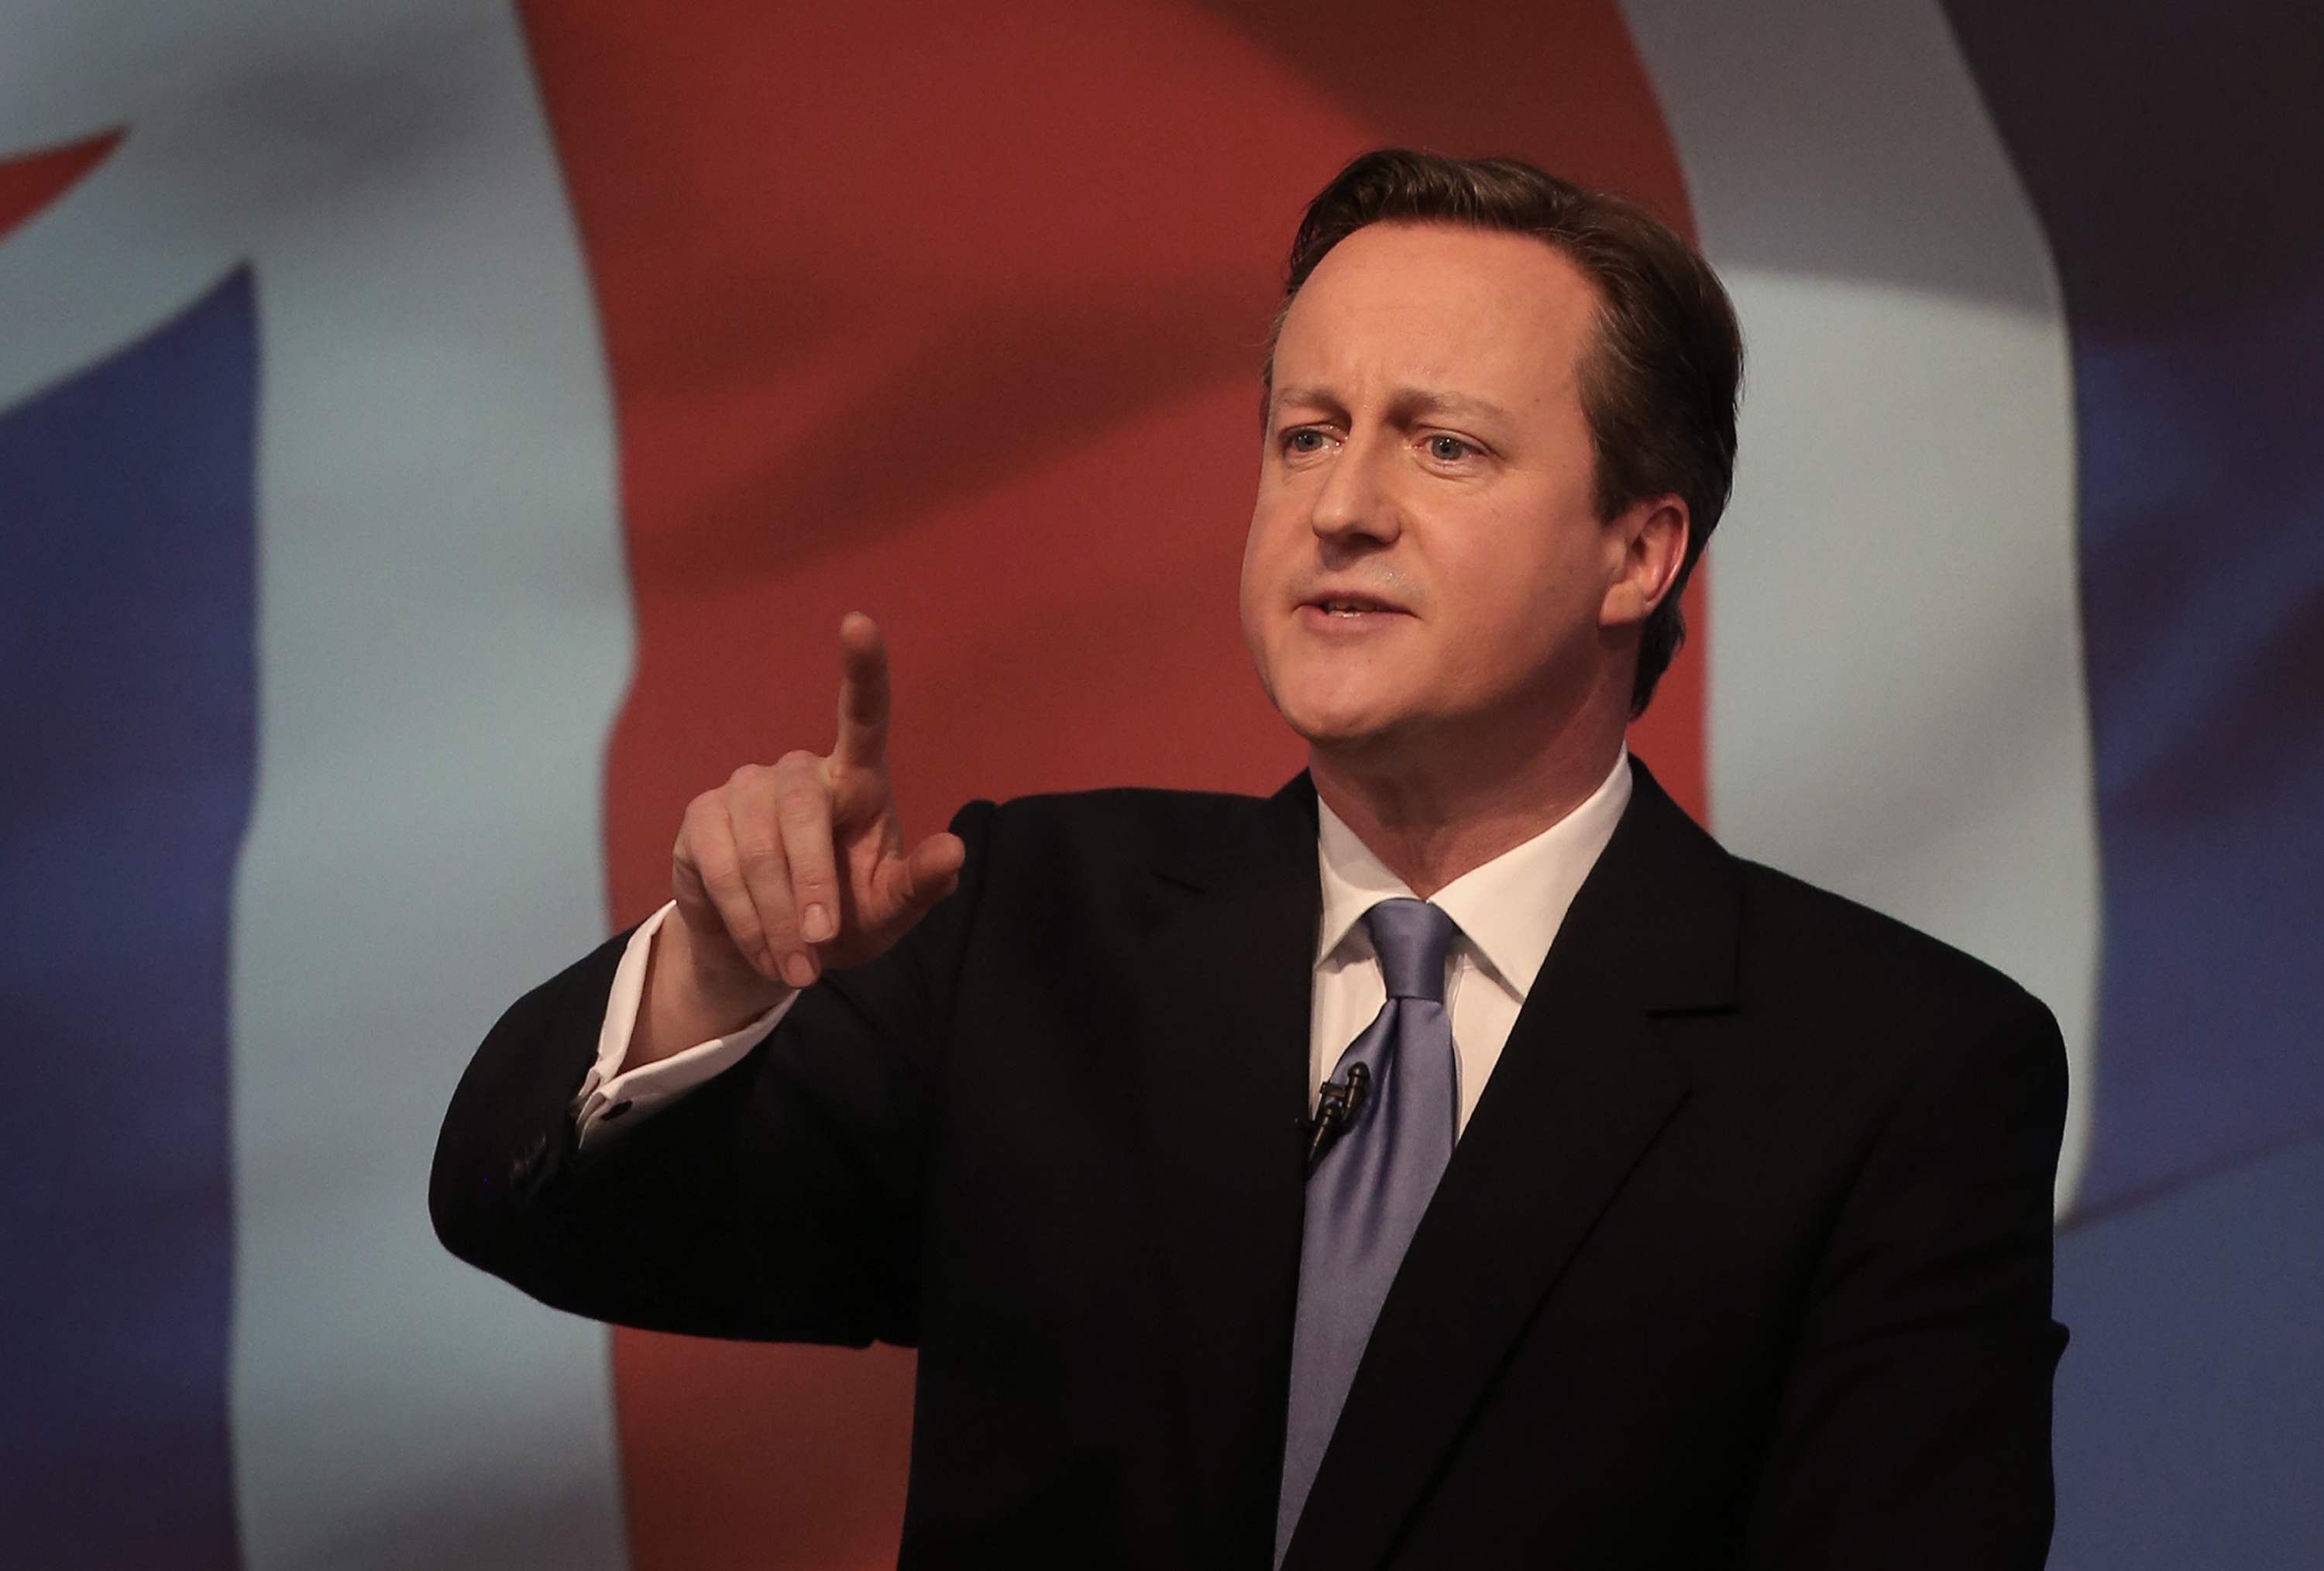 Britain's  Prime Minister David Cameron gestures as he unveils the Conservative party manifesto, in Swindon, England, Tuesday April 14, 2015.  Britain goes to the polls for a parliamentary election on Thursday May 7, 2015. (Peter Macdiarmid, Pool Photo via AP)